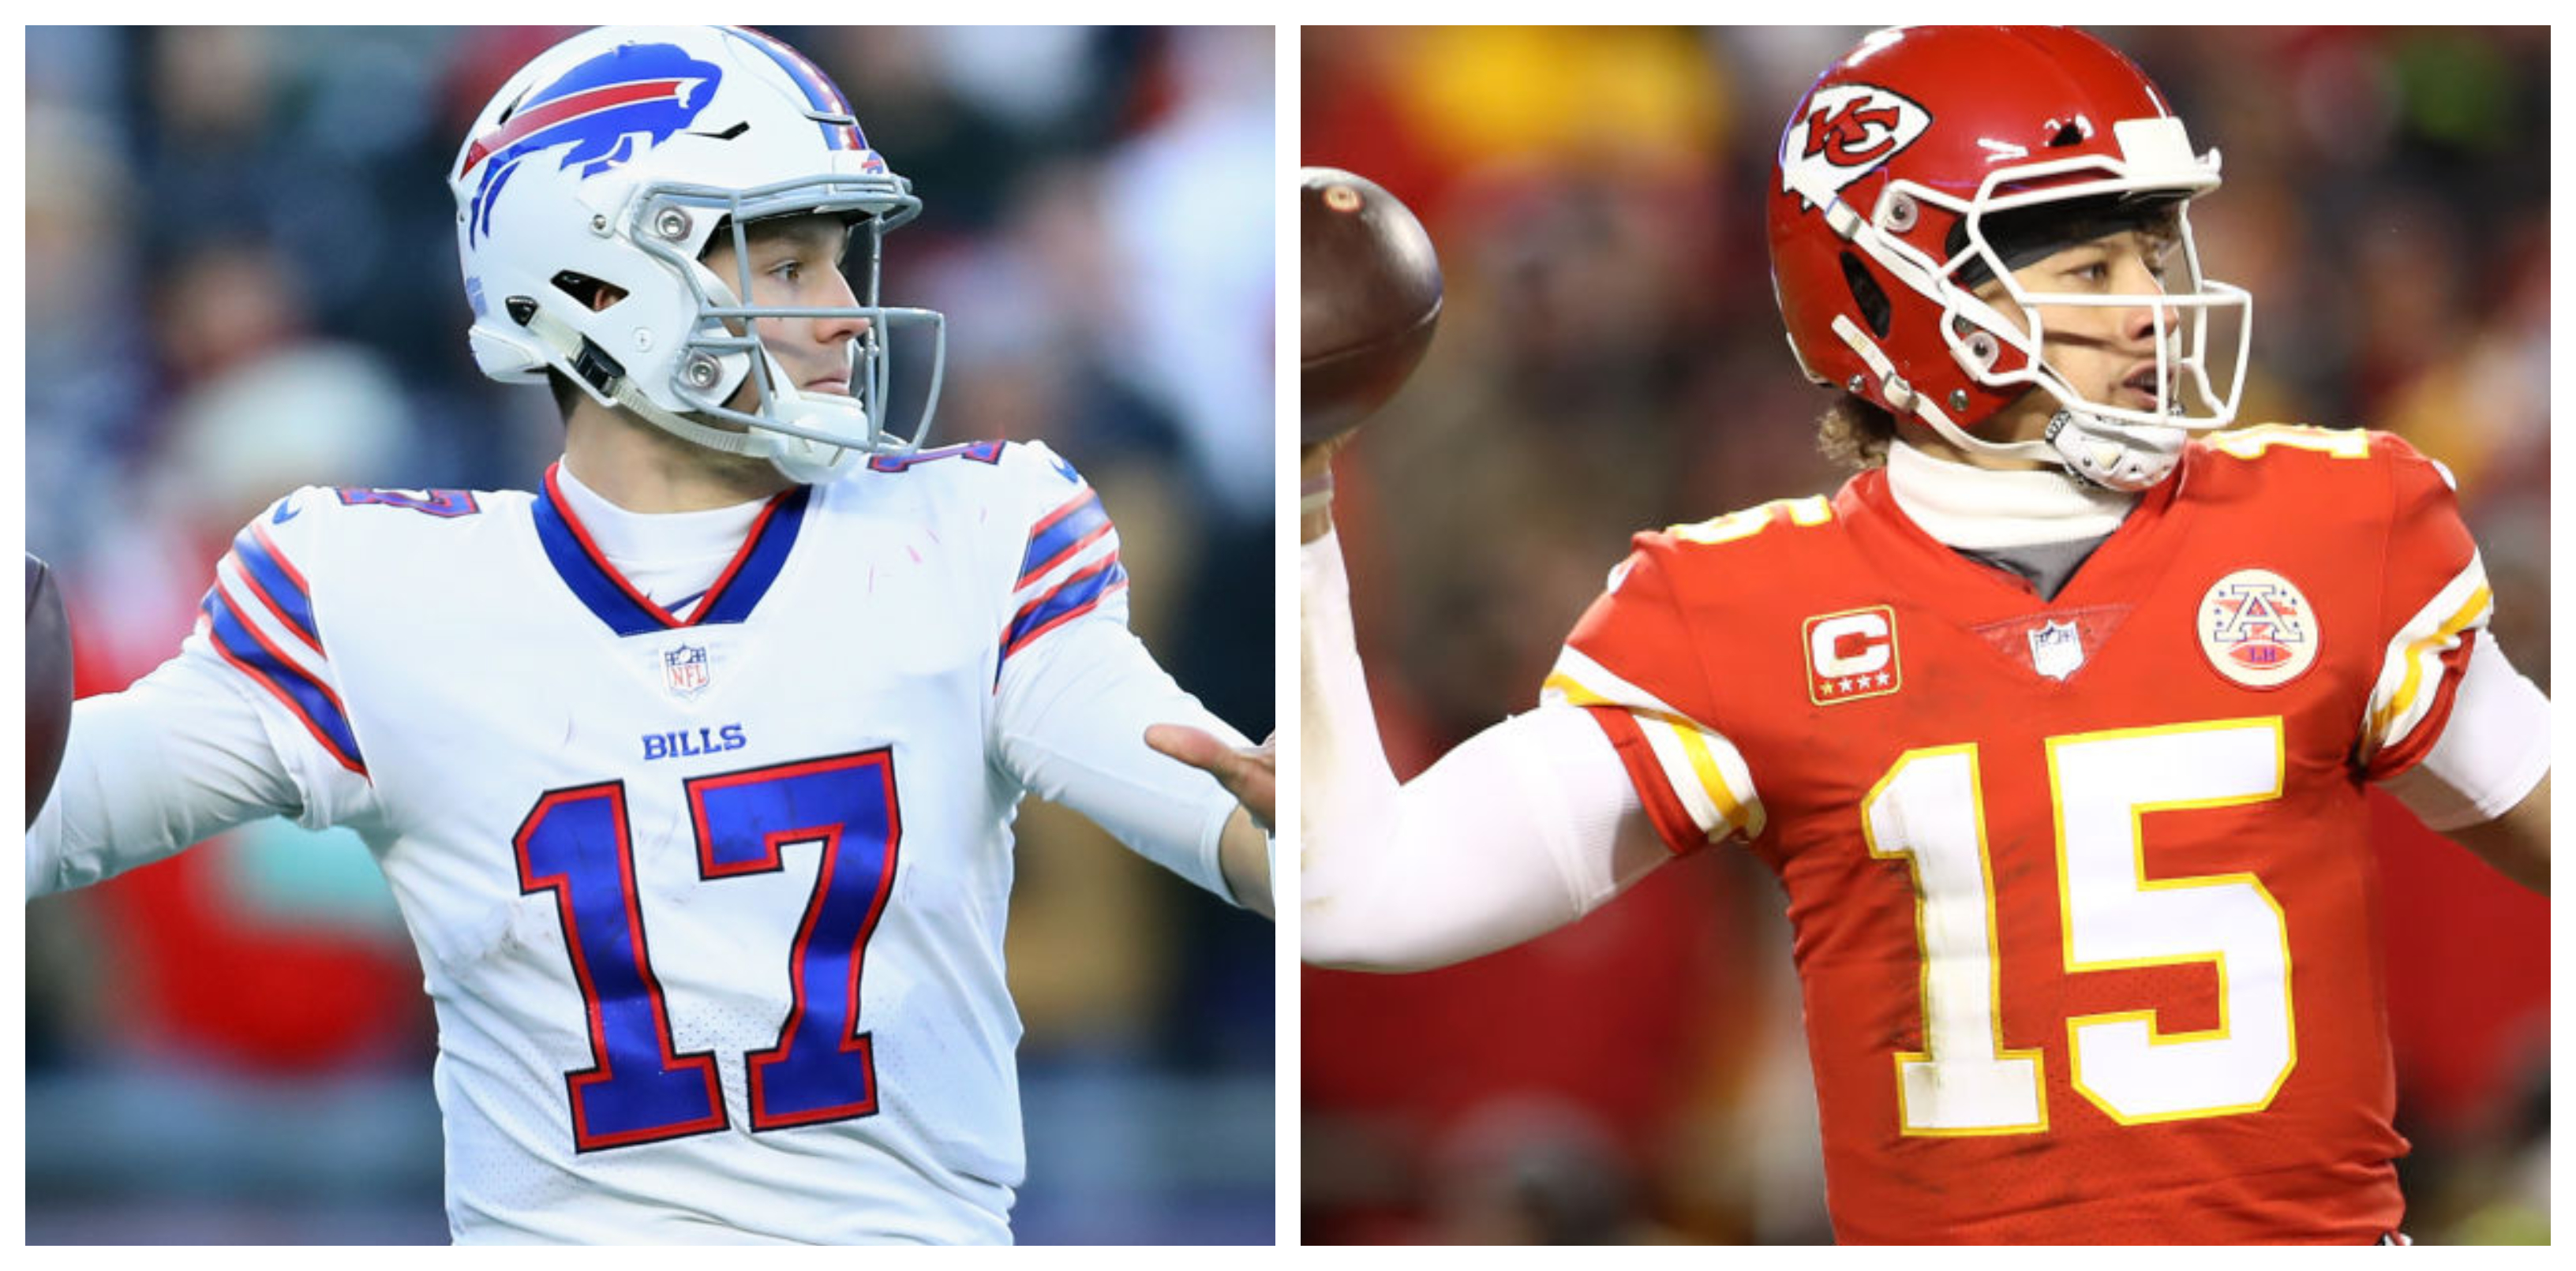 Patrick Mahomes: I would throw ball further than Buffalo Bills QB Josh Allen